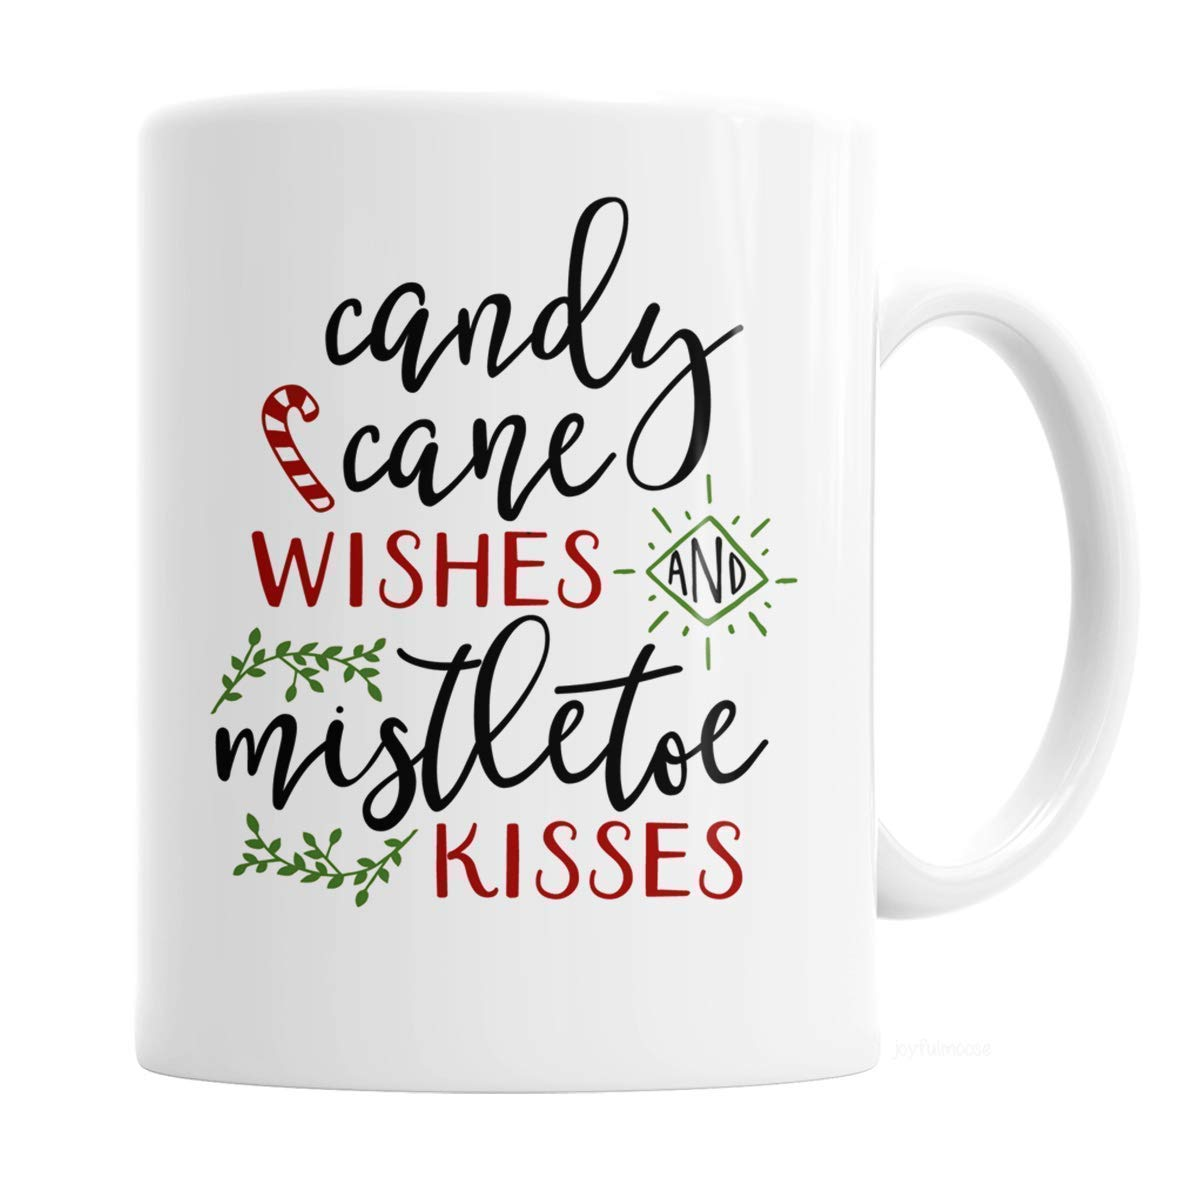 Christmas Coffee Mugs.Christmas Coffee Mug 11 Oz Candy Cane